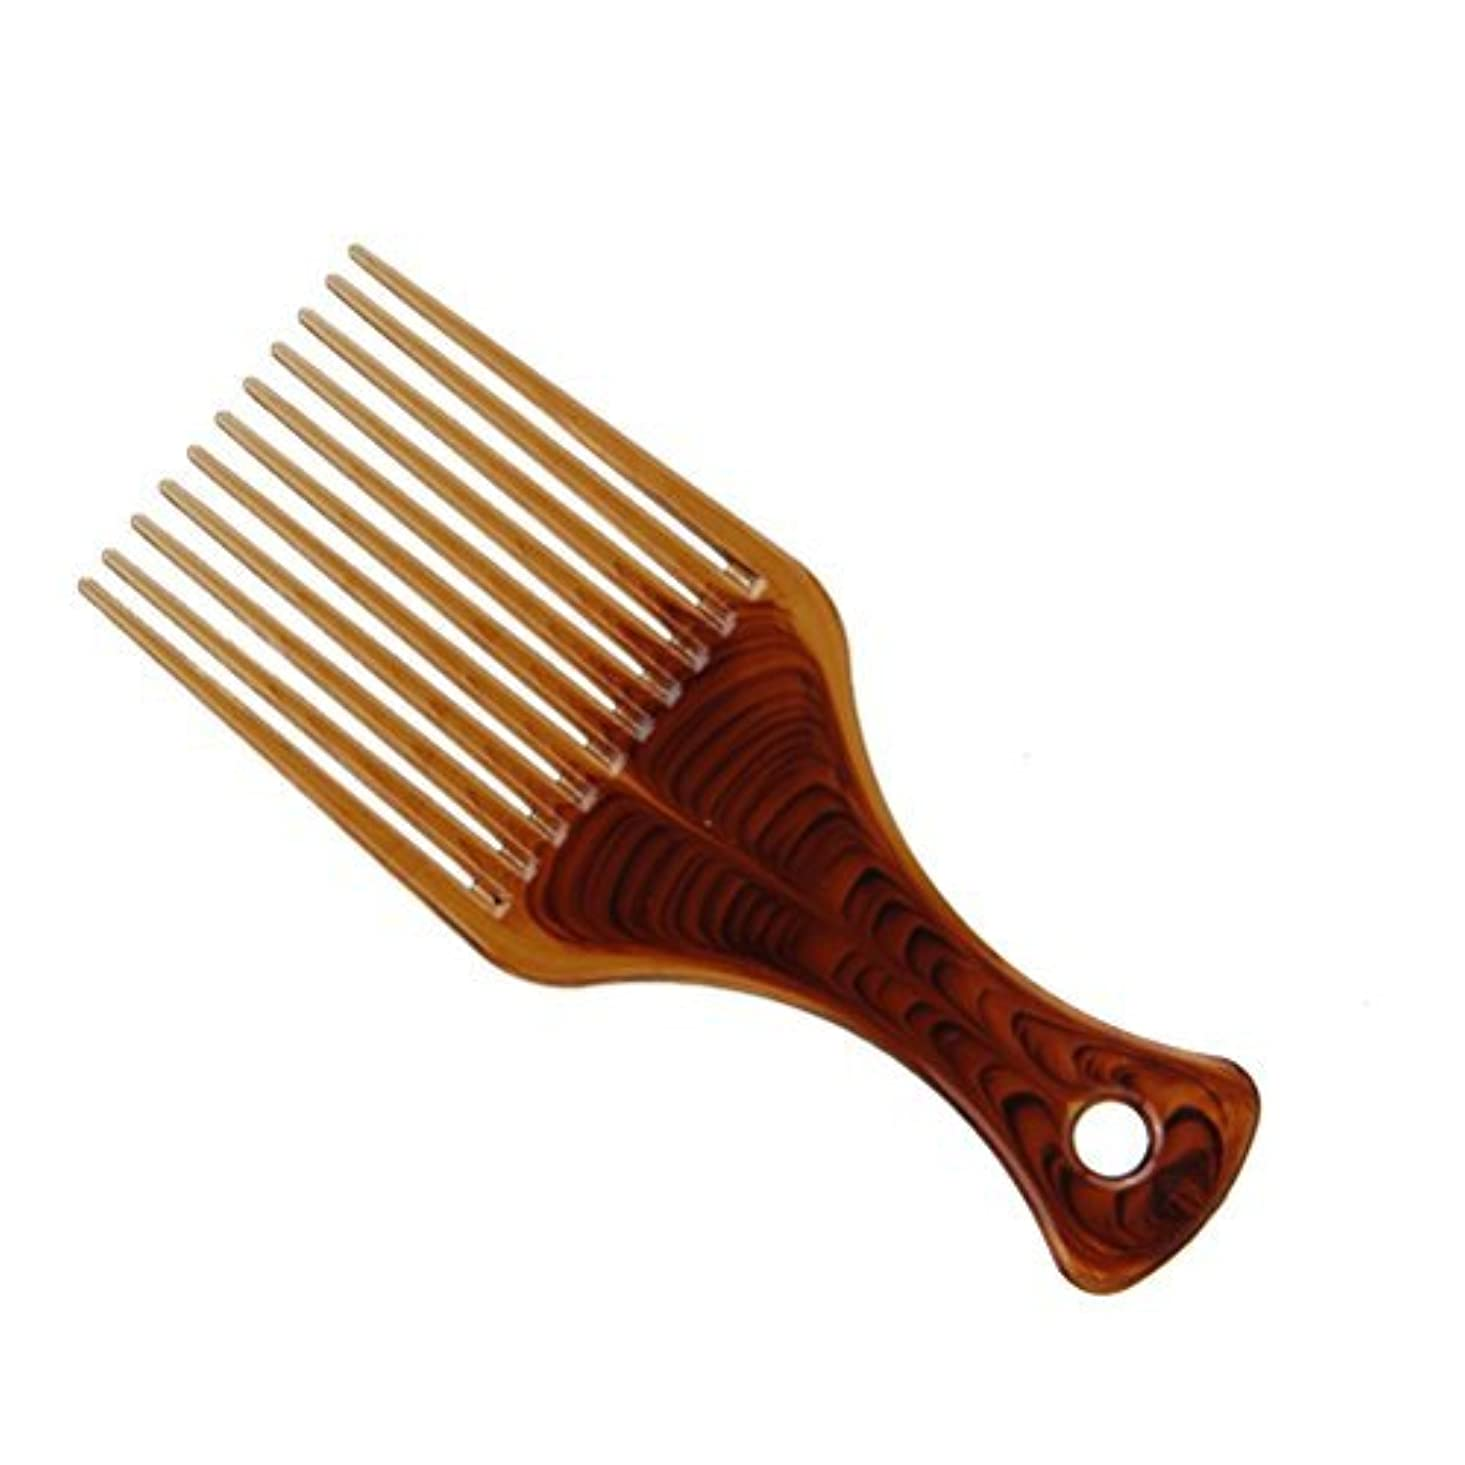 カフェ役職運命的なFrcolor Hair Pick Comb, Smooth No Frizz Afro Hair Lift Pick Comb for Hairstyle [並行輸入品]